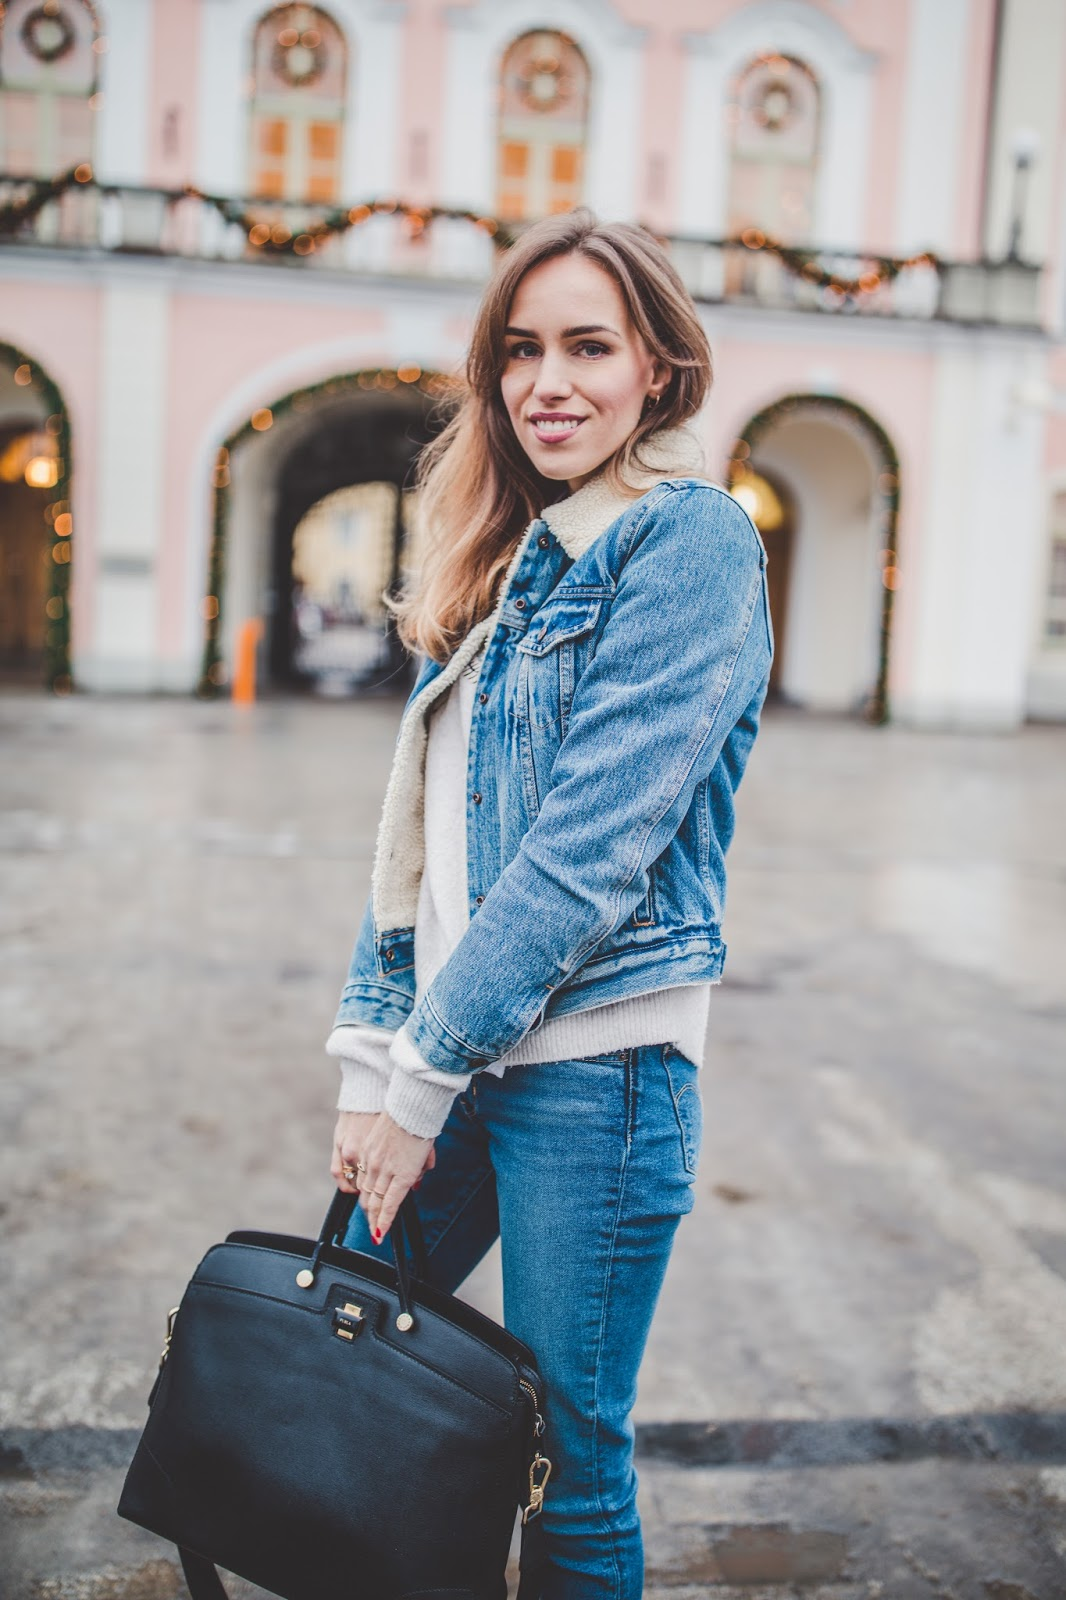 denim jacket sweater jeans outfit winter